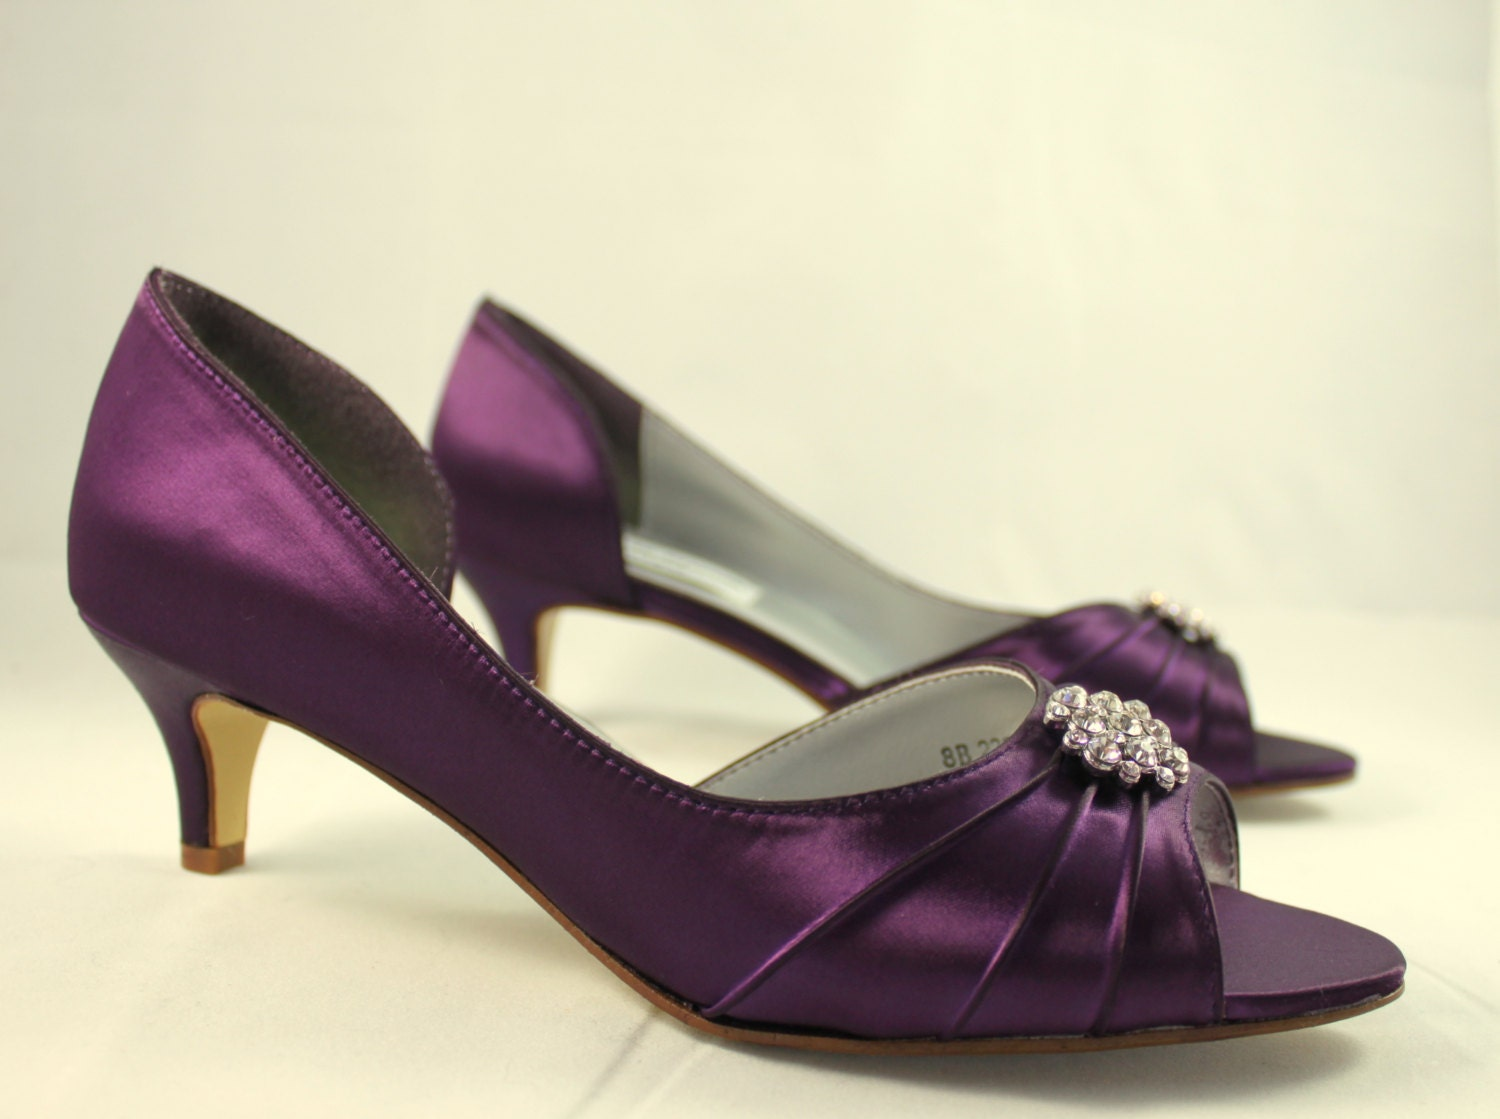 Incroyable Purple Wedding Shoes Low Heel SALE Size 8    1.75 Inch Heel   Aubergine  Colored Shoes Ready To Ship   Eggplant Shoe